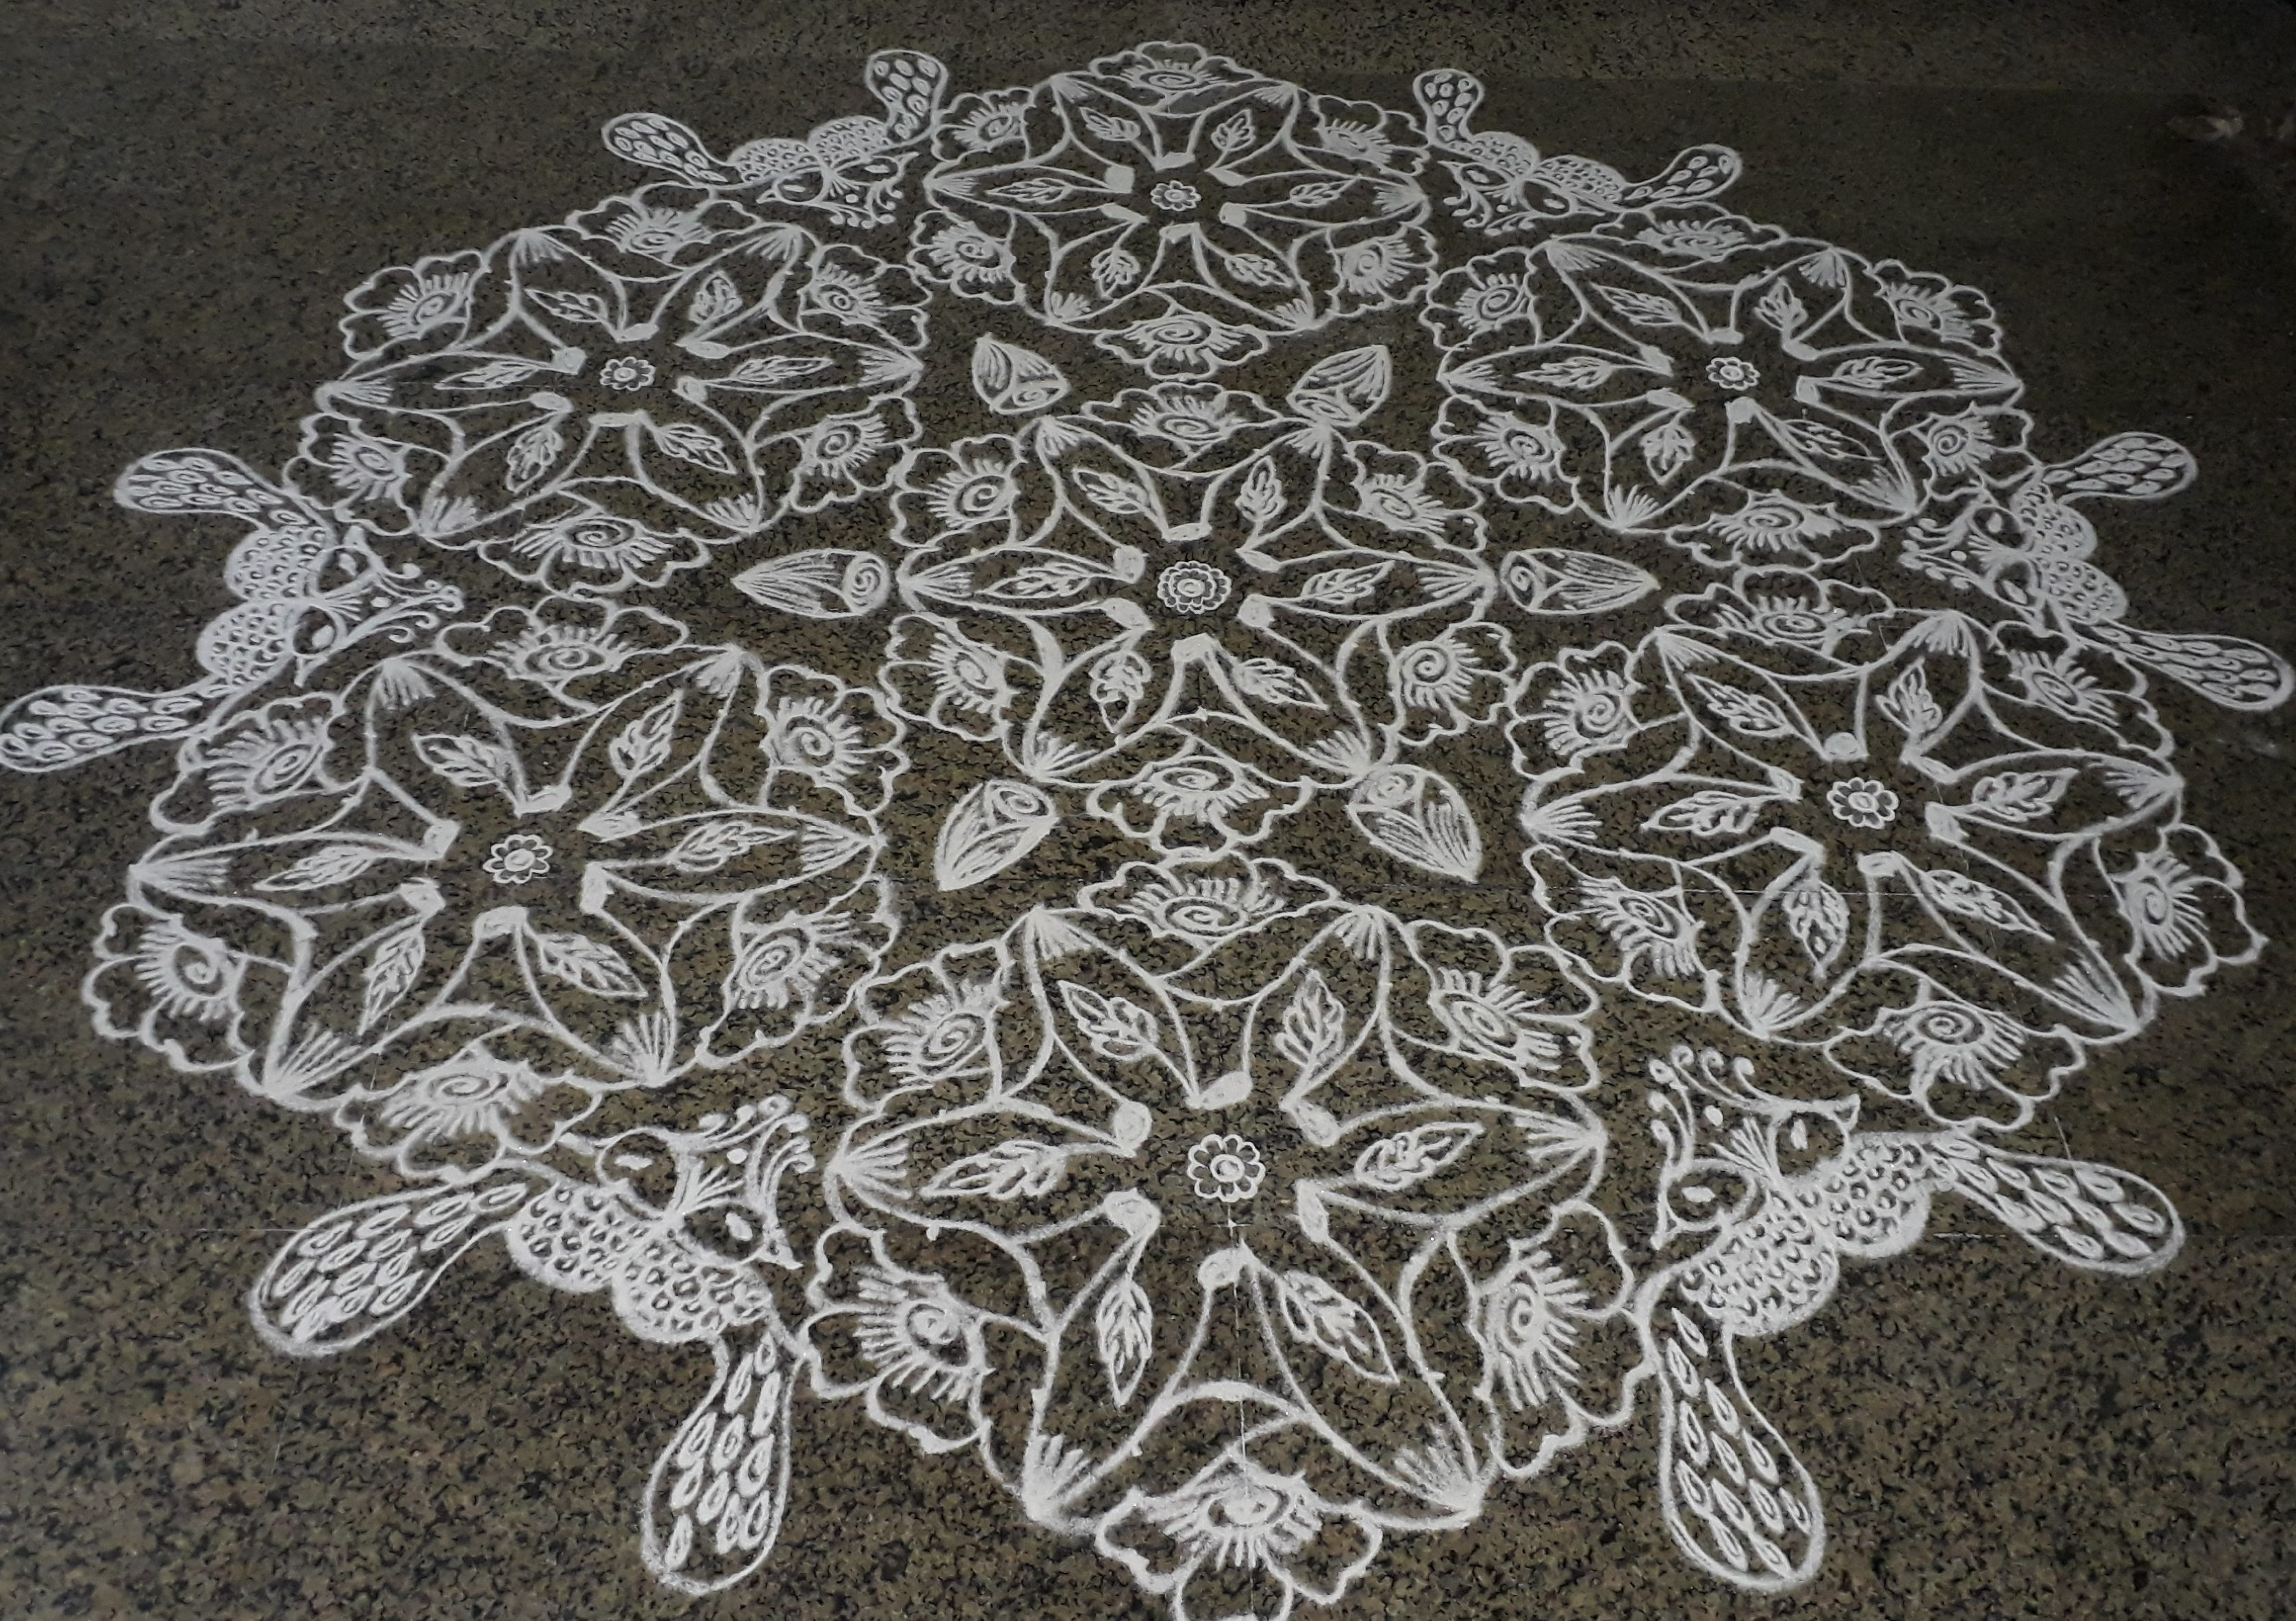 25-13 interlaced dots flowers and peacock kolam || Contest Kolam